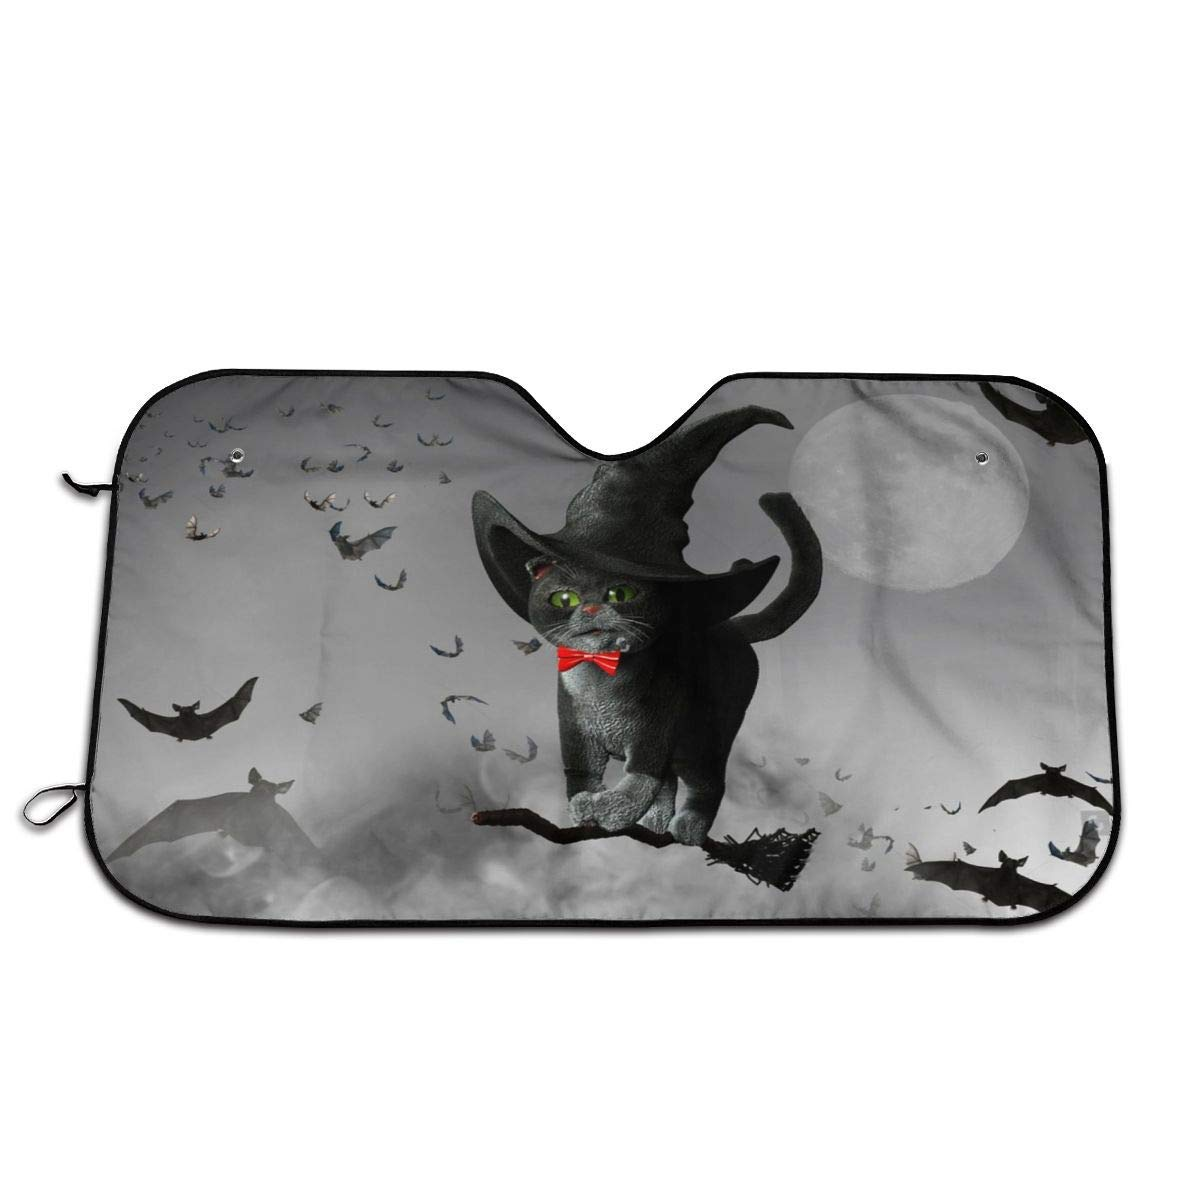 3D Illustration of Cat Wearing A Witches Hat On Halloween Flying On A Broom otectsUniversal Foldable Car Windshield Sun Shade UV Rays Sun Visor Protector Protector 51.2x27.5 Inch by DuoWi